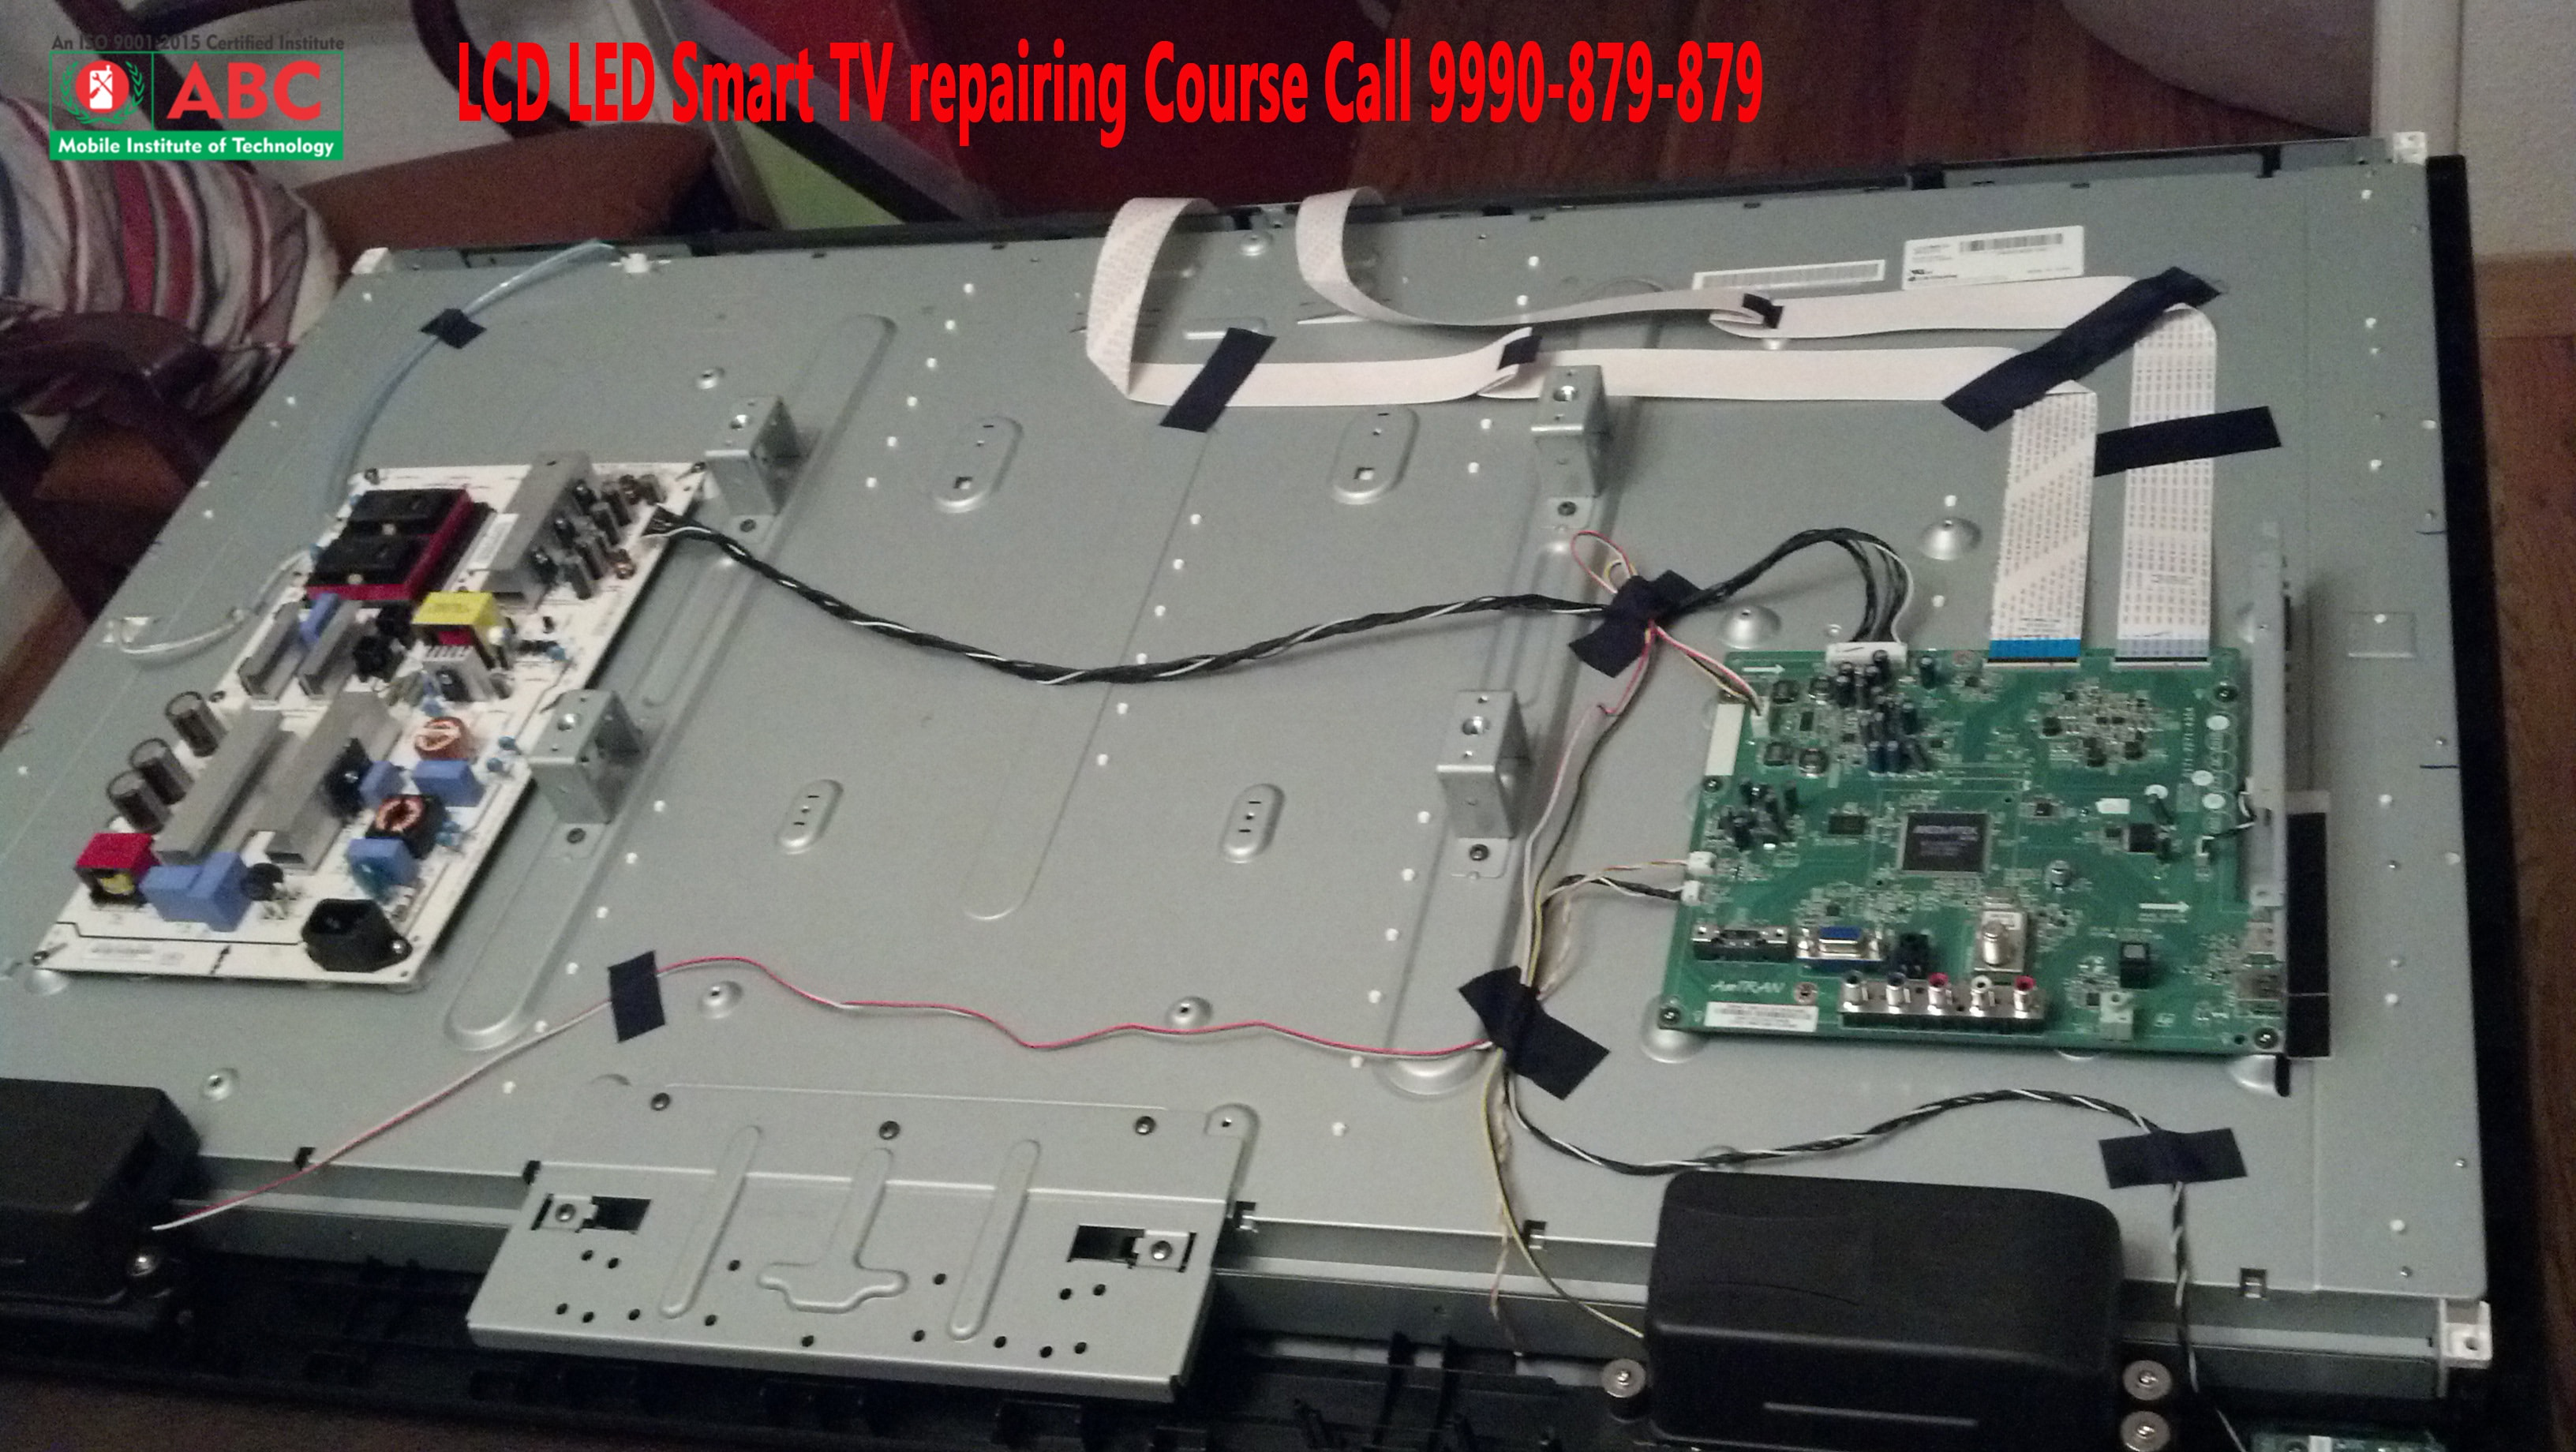 LCD LED Smart TV Repairing Course